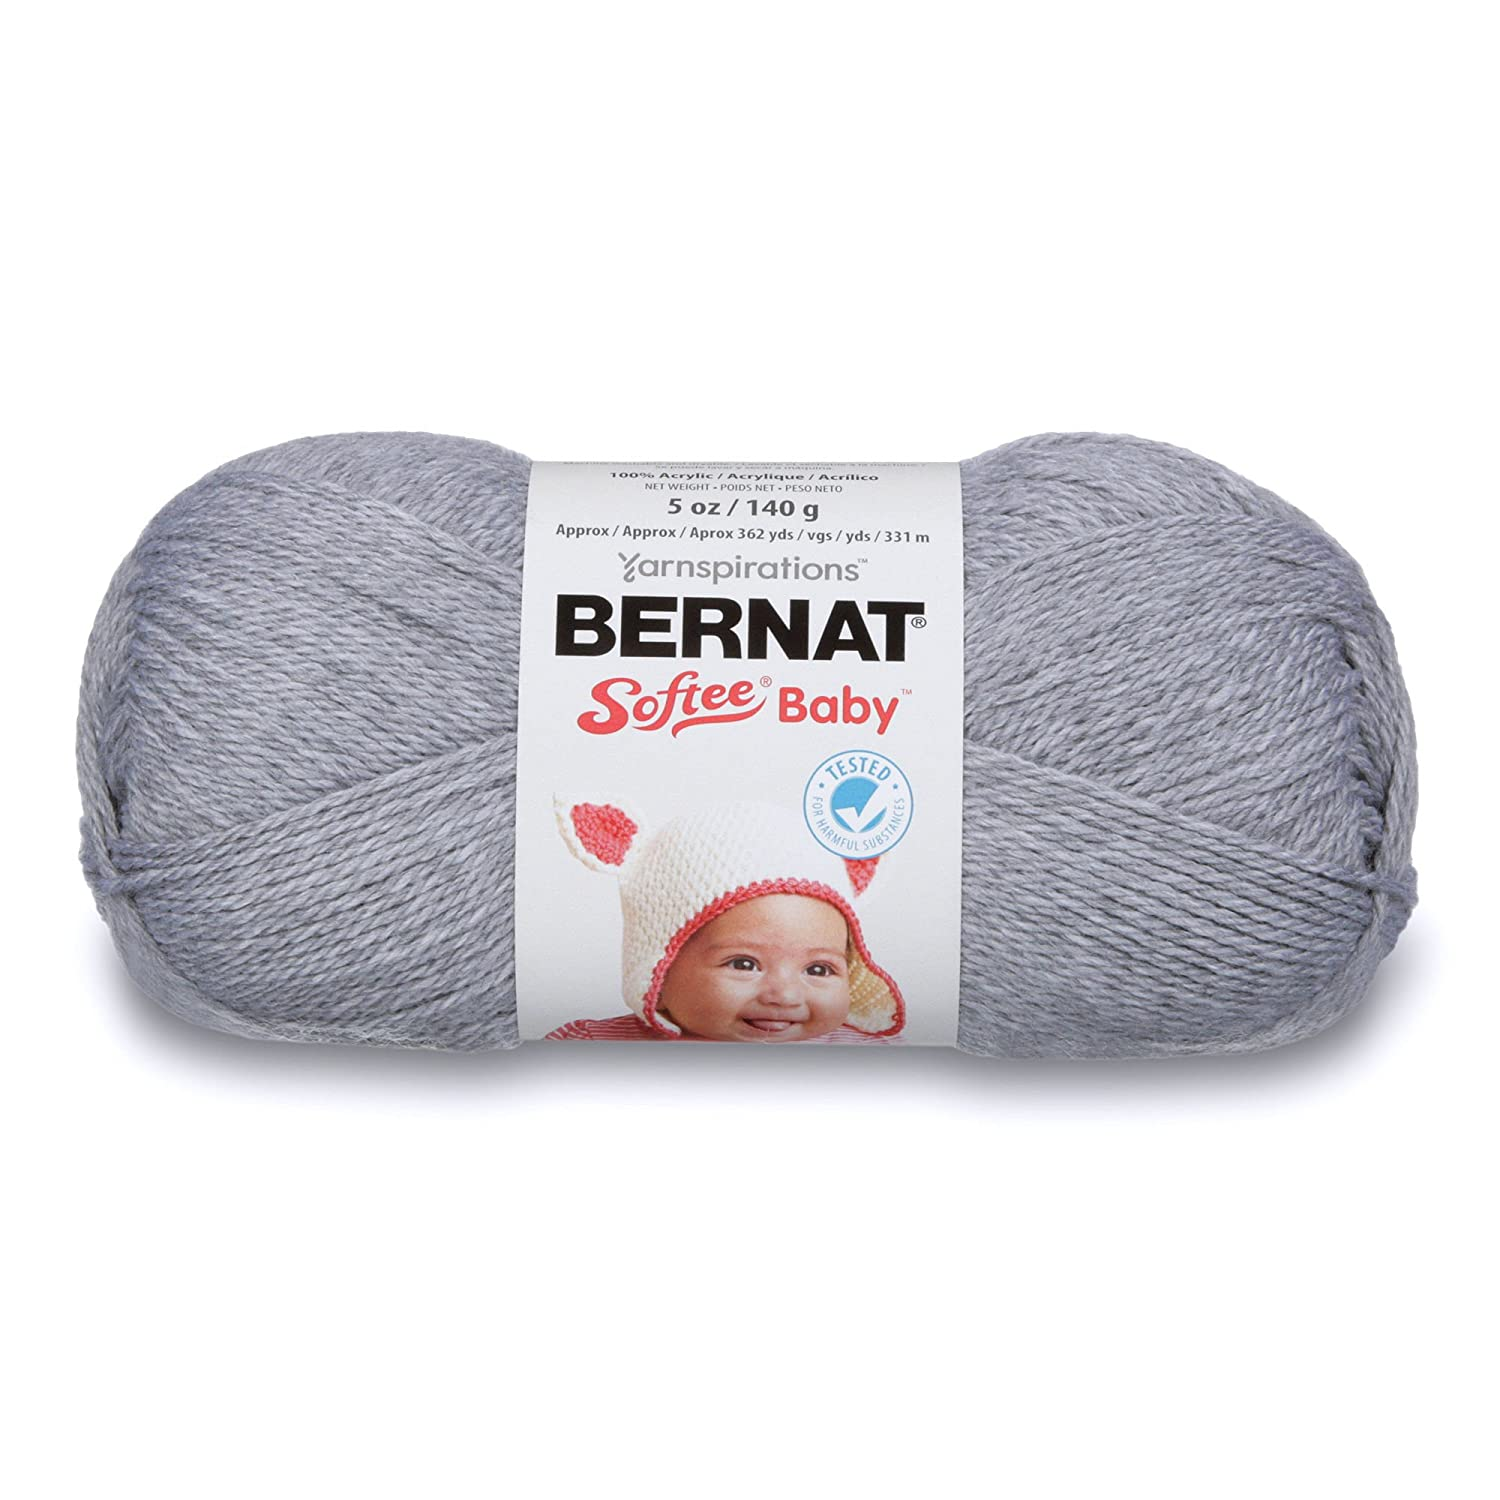 White 1 Ball 5 oz Bernat Softee Baby Yarn